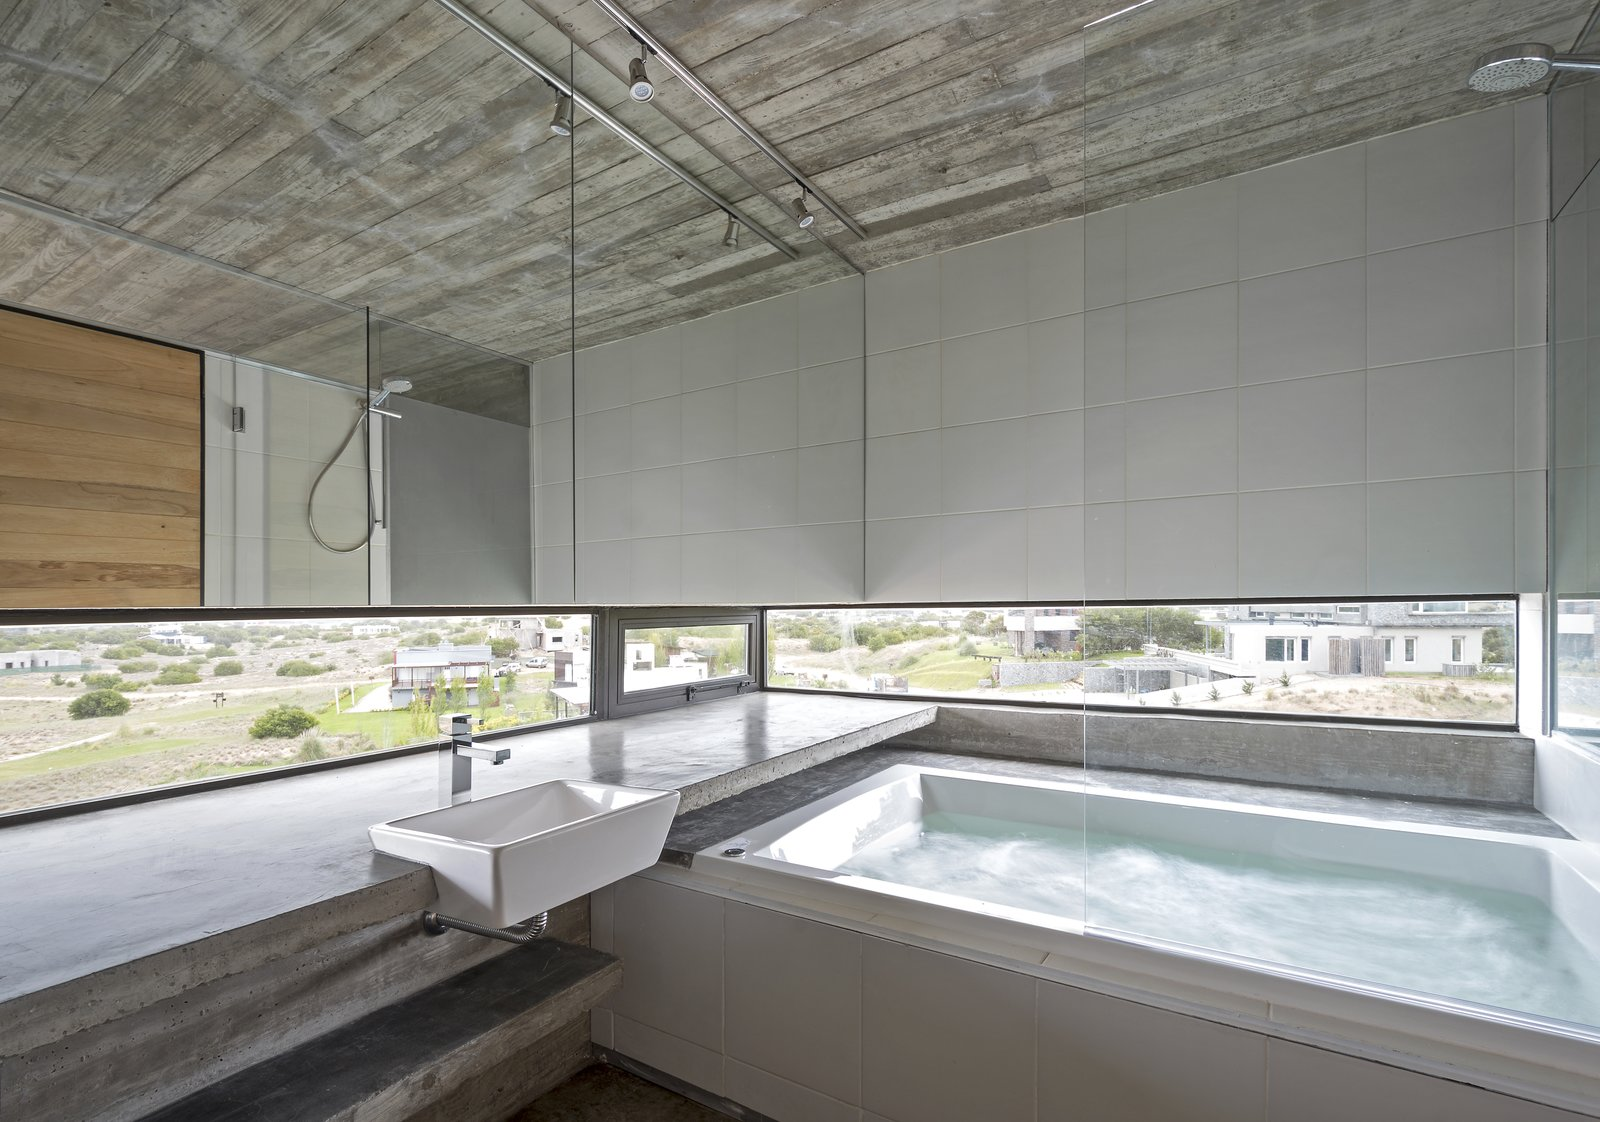 A jacuzzi bathtub that looks out fo views of the neighborhood. Tagged: Bath Room, Concrete Counter, Whirlpool Tub, Concrete Floor, Undermount Sink, and Track Lighting.  Best Photos from This Stacked Concrete Home Is Not Your Typical Golf Course Dwelling